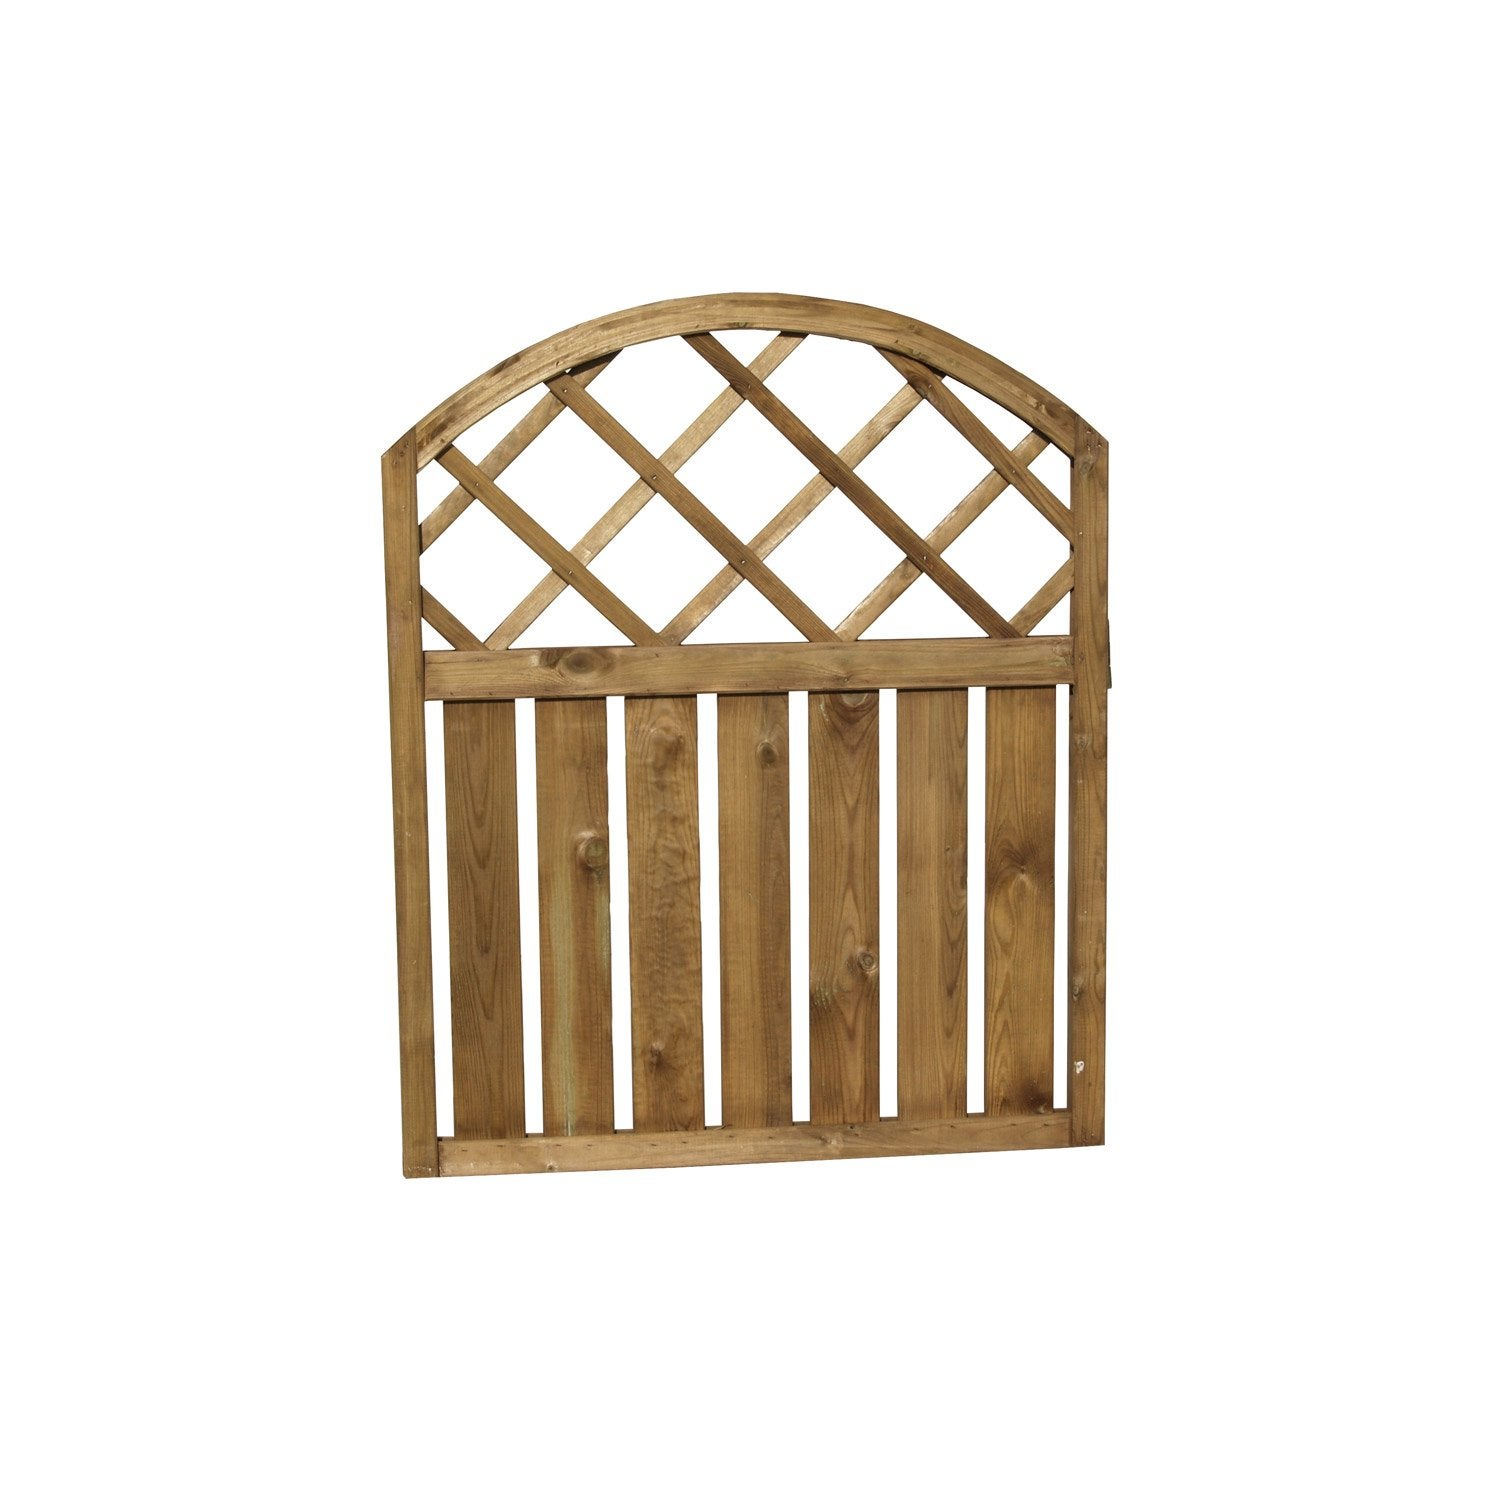 Portillon battant pinto marron leroy merlin for Portillon de jardin pvc